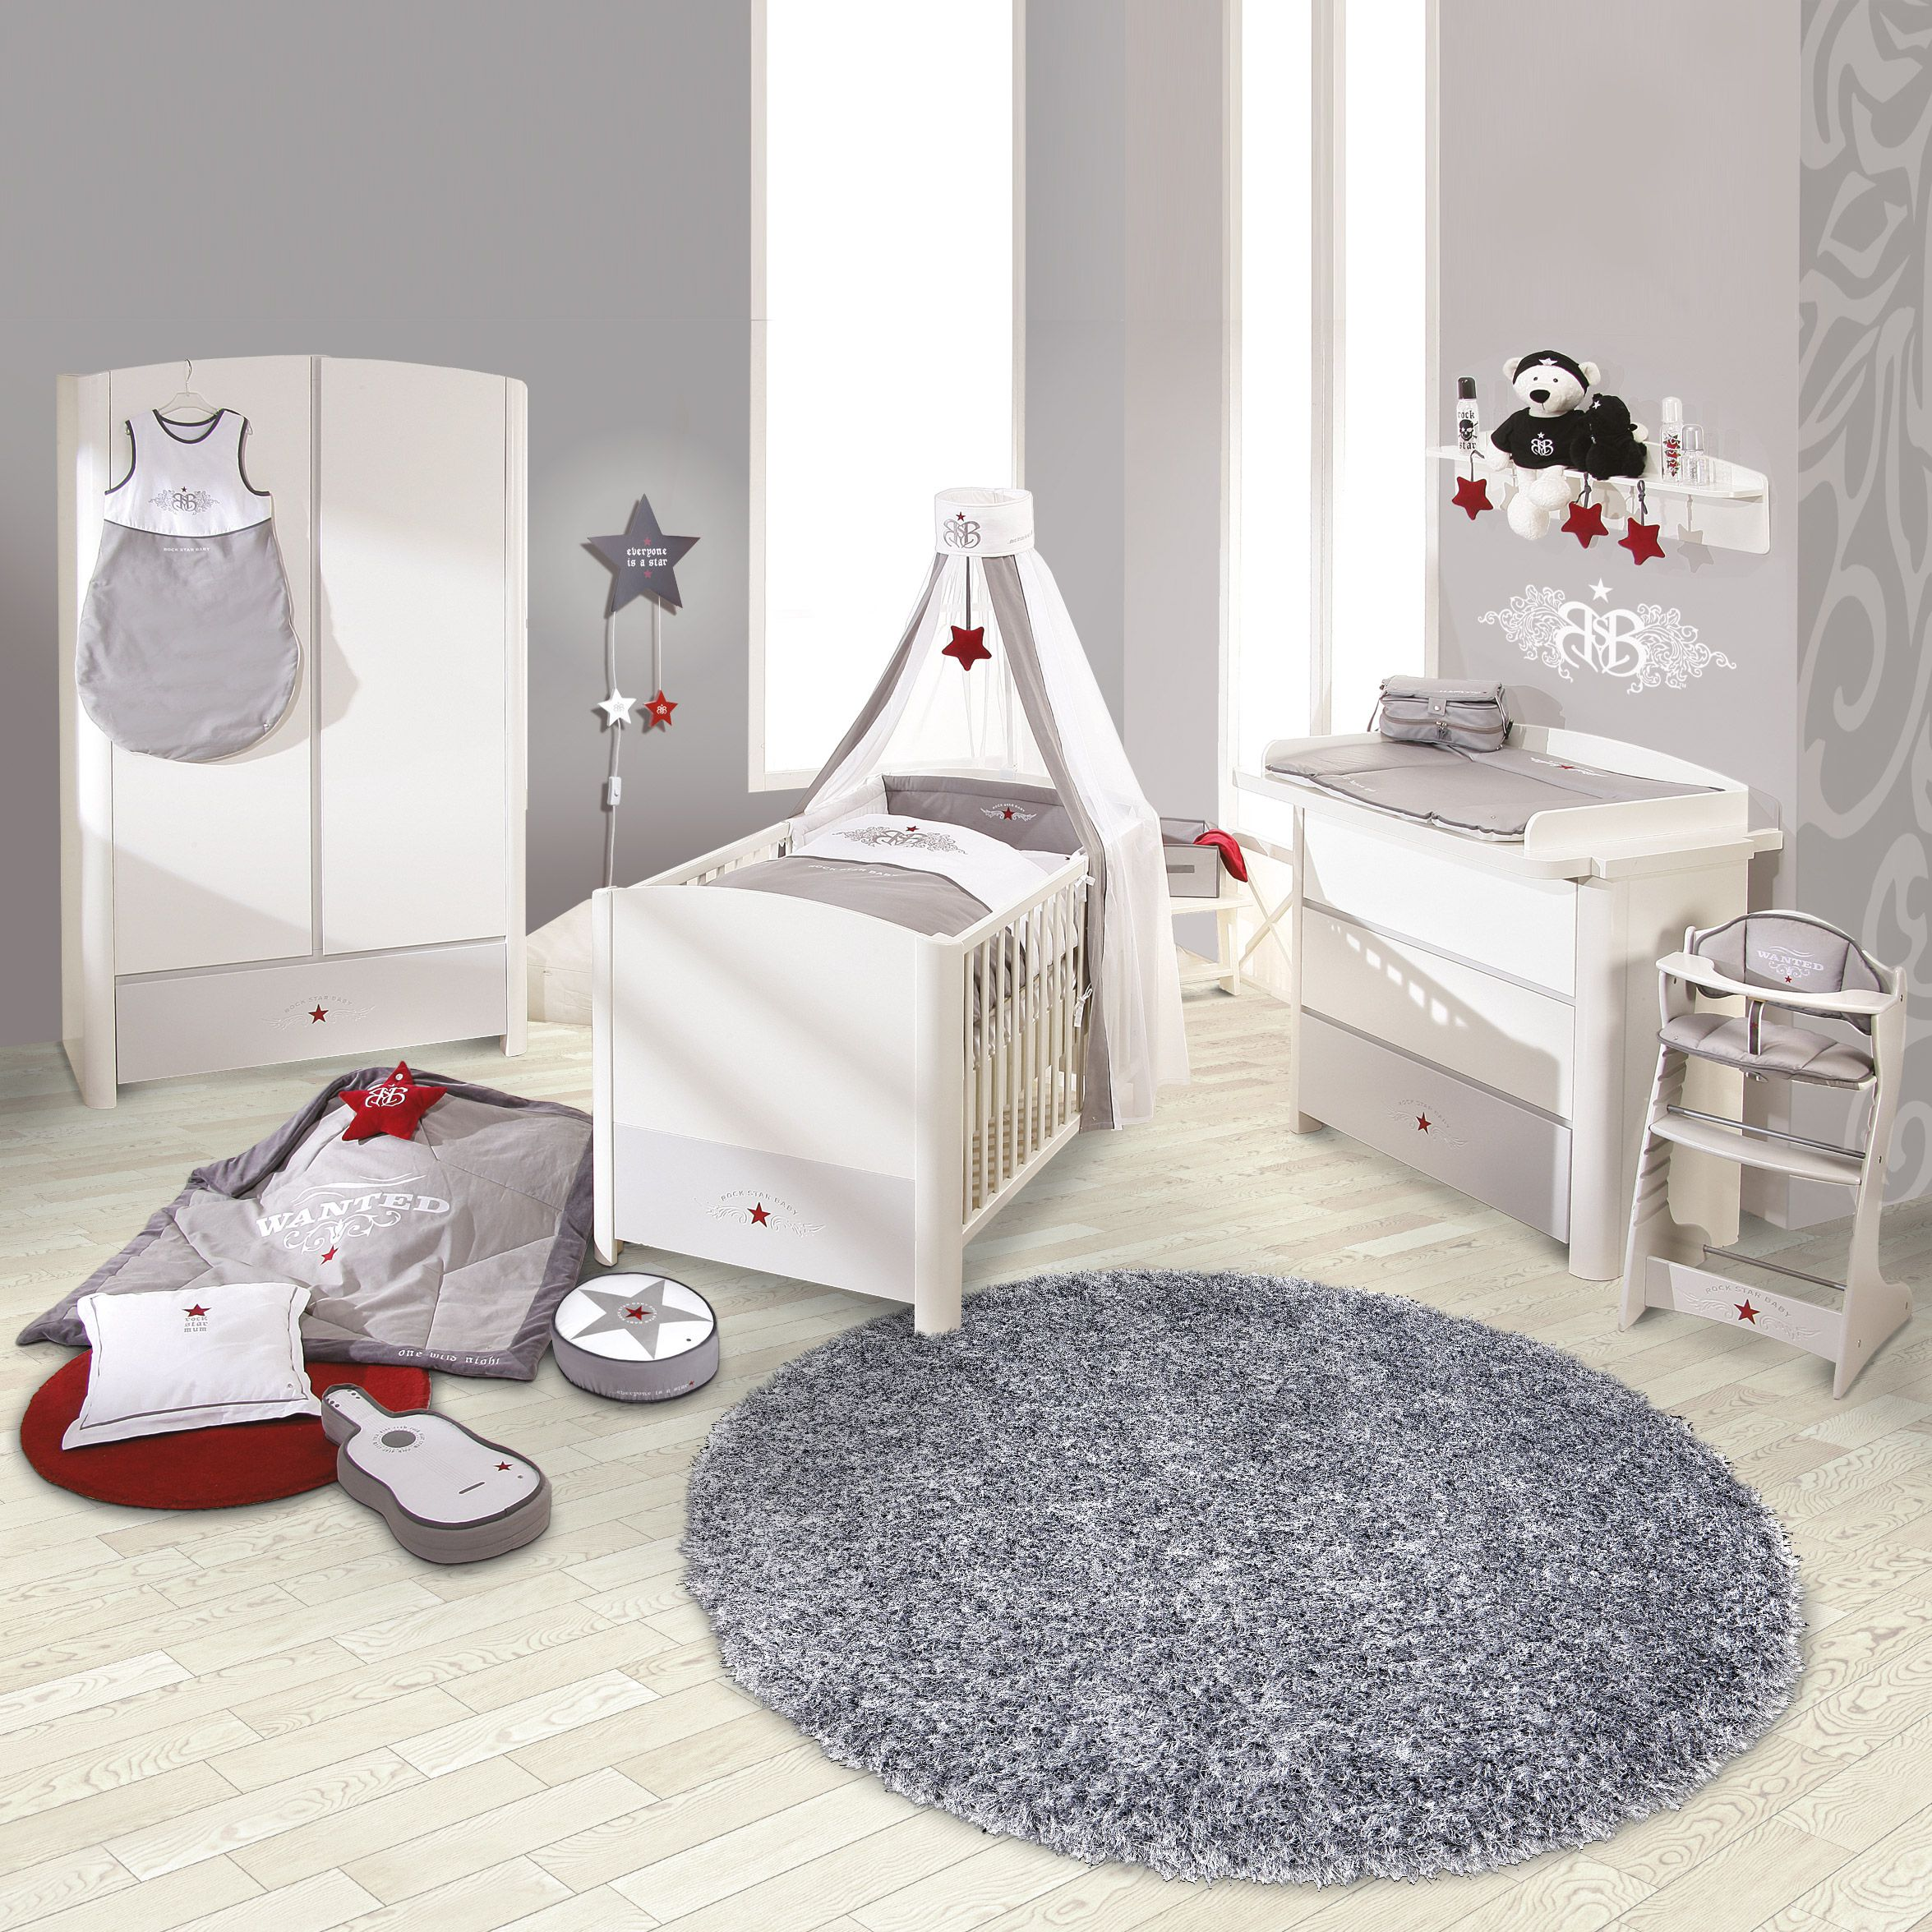 babybett und wickelkommode preisvergleiche. Black Bedroom Furniture Sets. Home Design Ideas